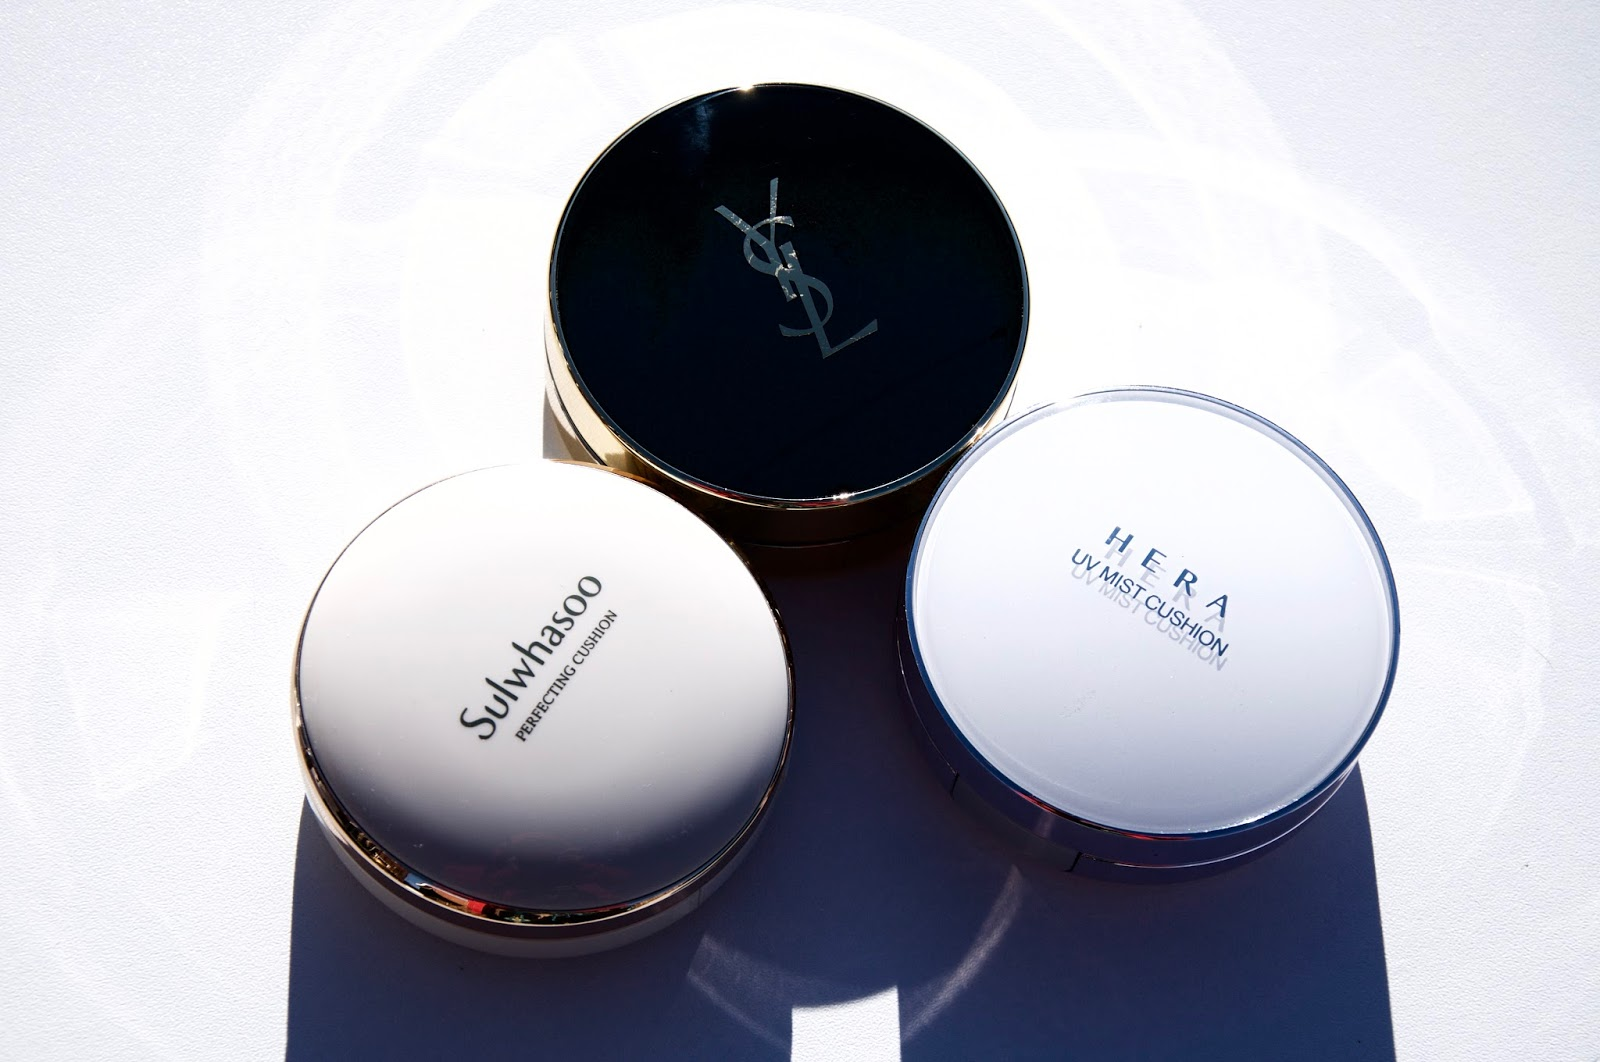 THE REVIEW: YSL LE CUSHION ENCRE DE PEAU FUSHION INK FOUNDATION SPF 23